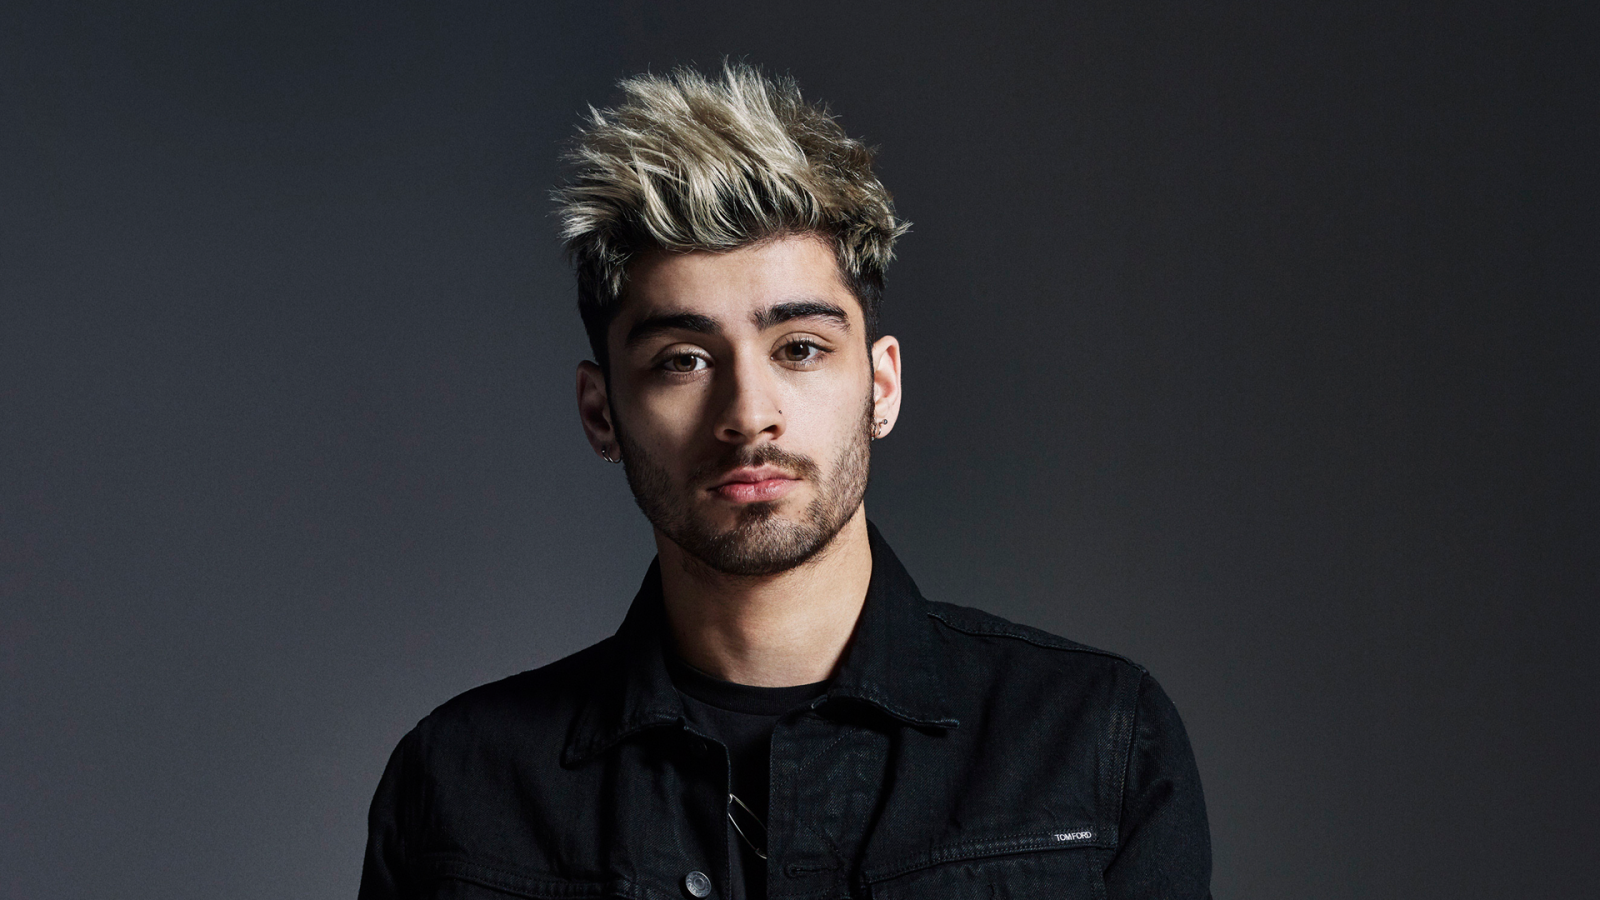 Zayn malik hd images get free top quality zayn malik hd images zayn malik hd images get free top quality zayn malik hd images for your desktop thecheapjerseys Images